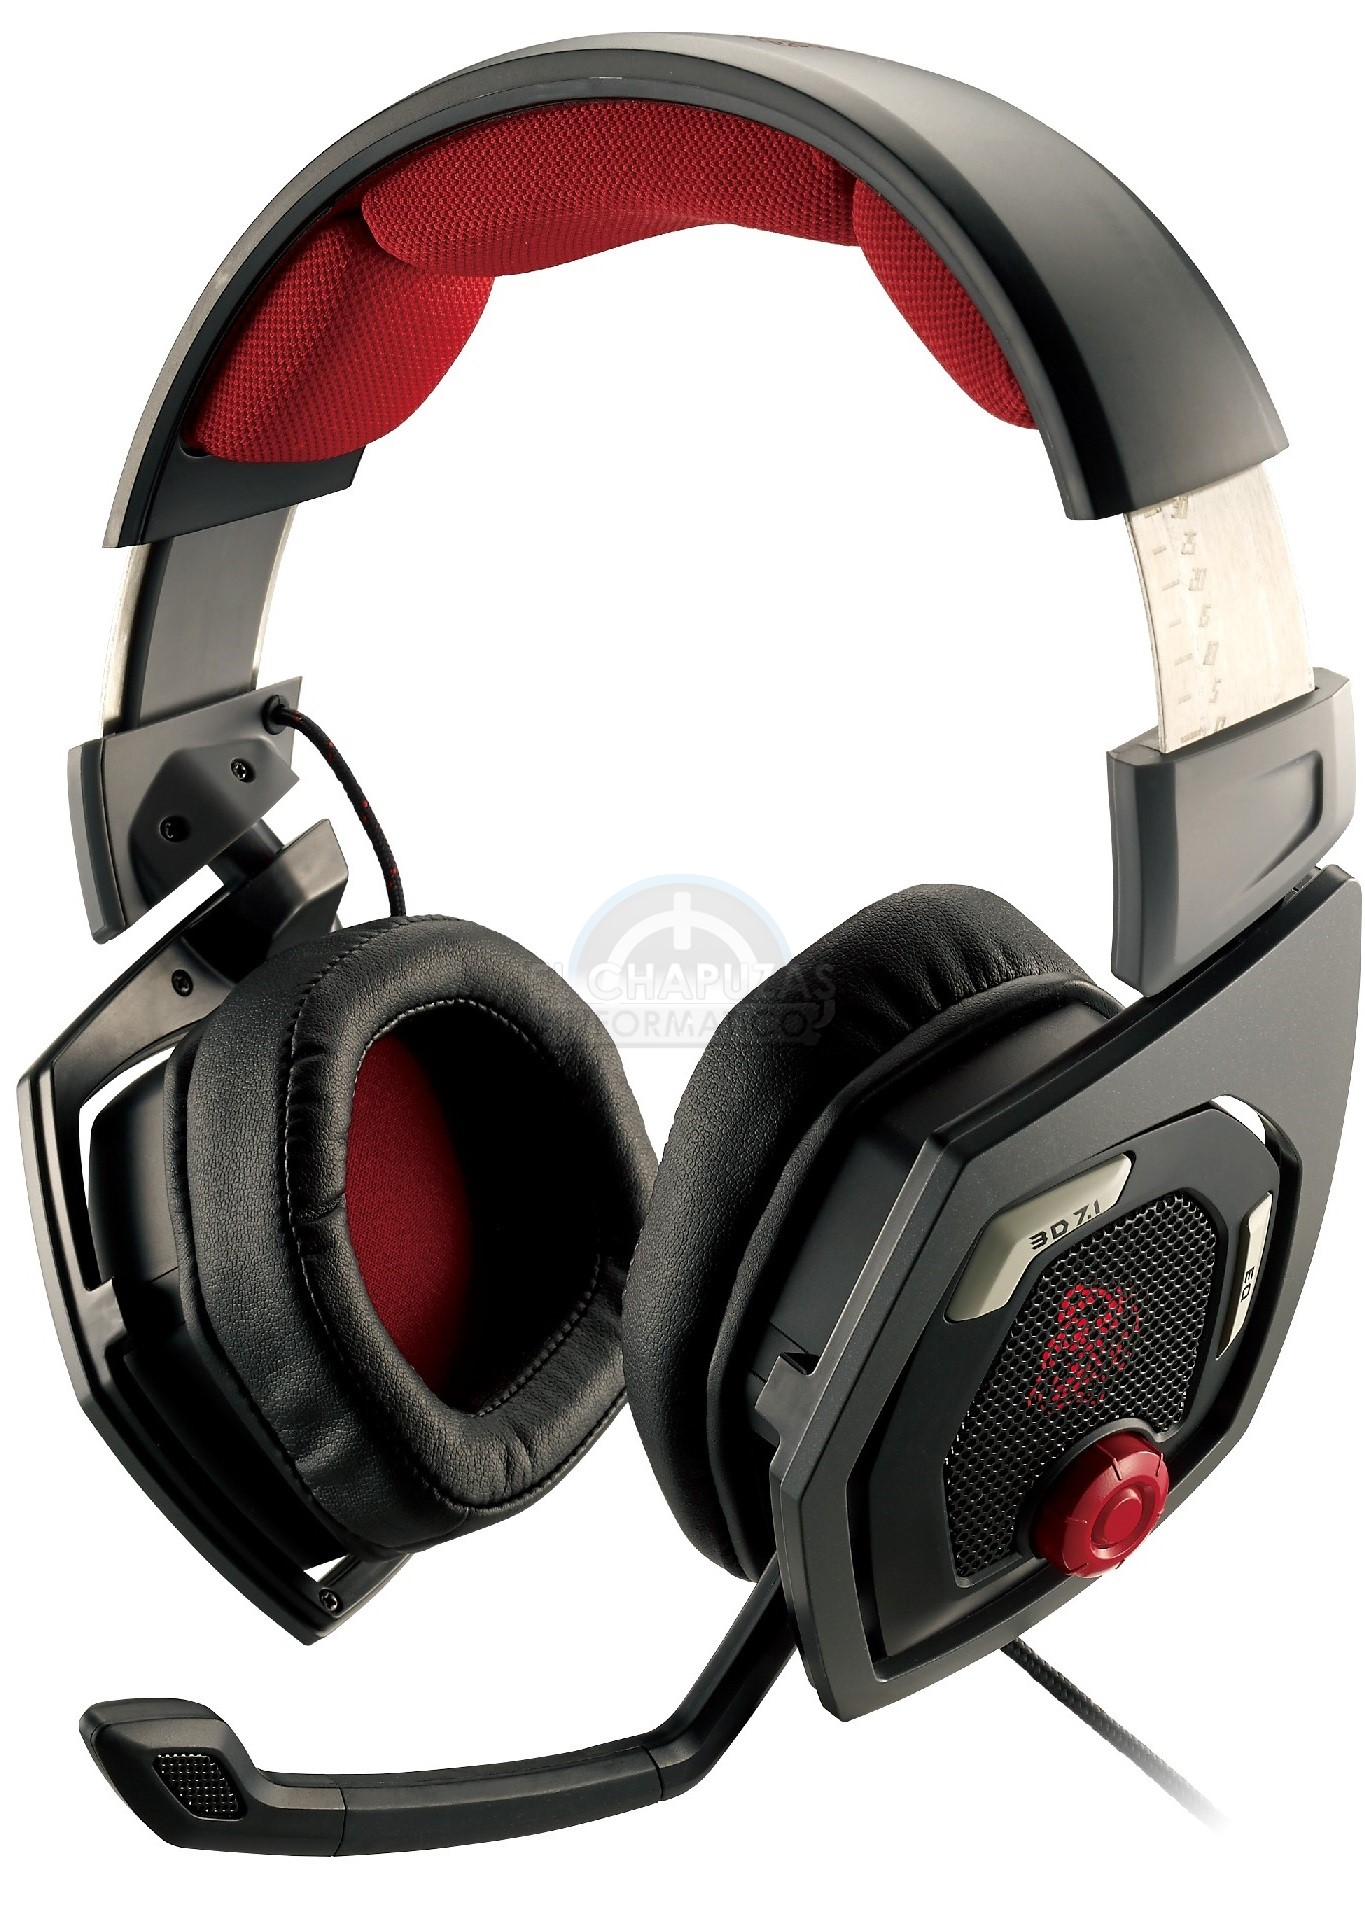 auriculares 7.1